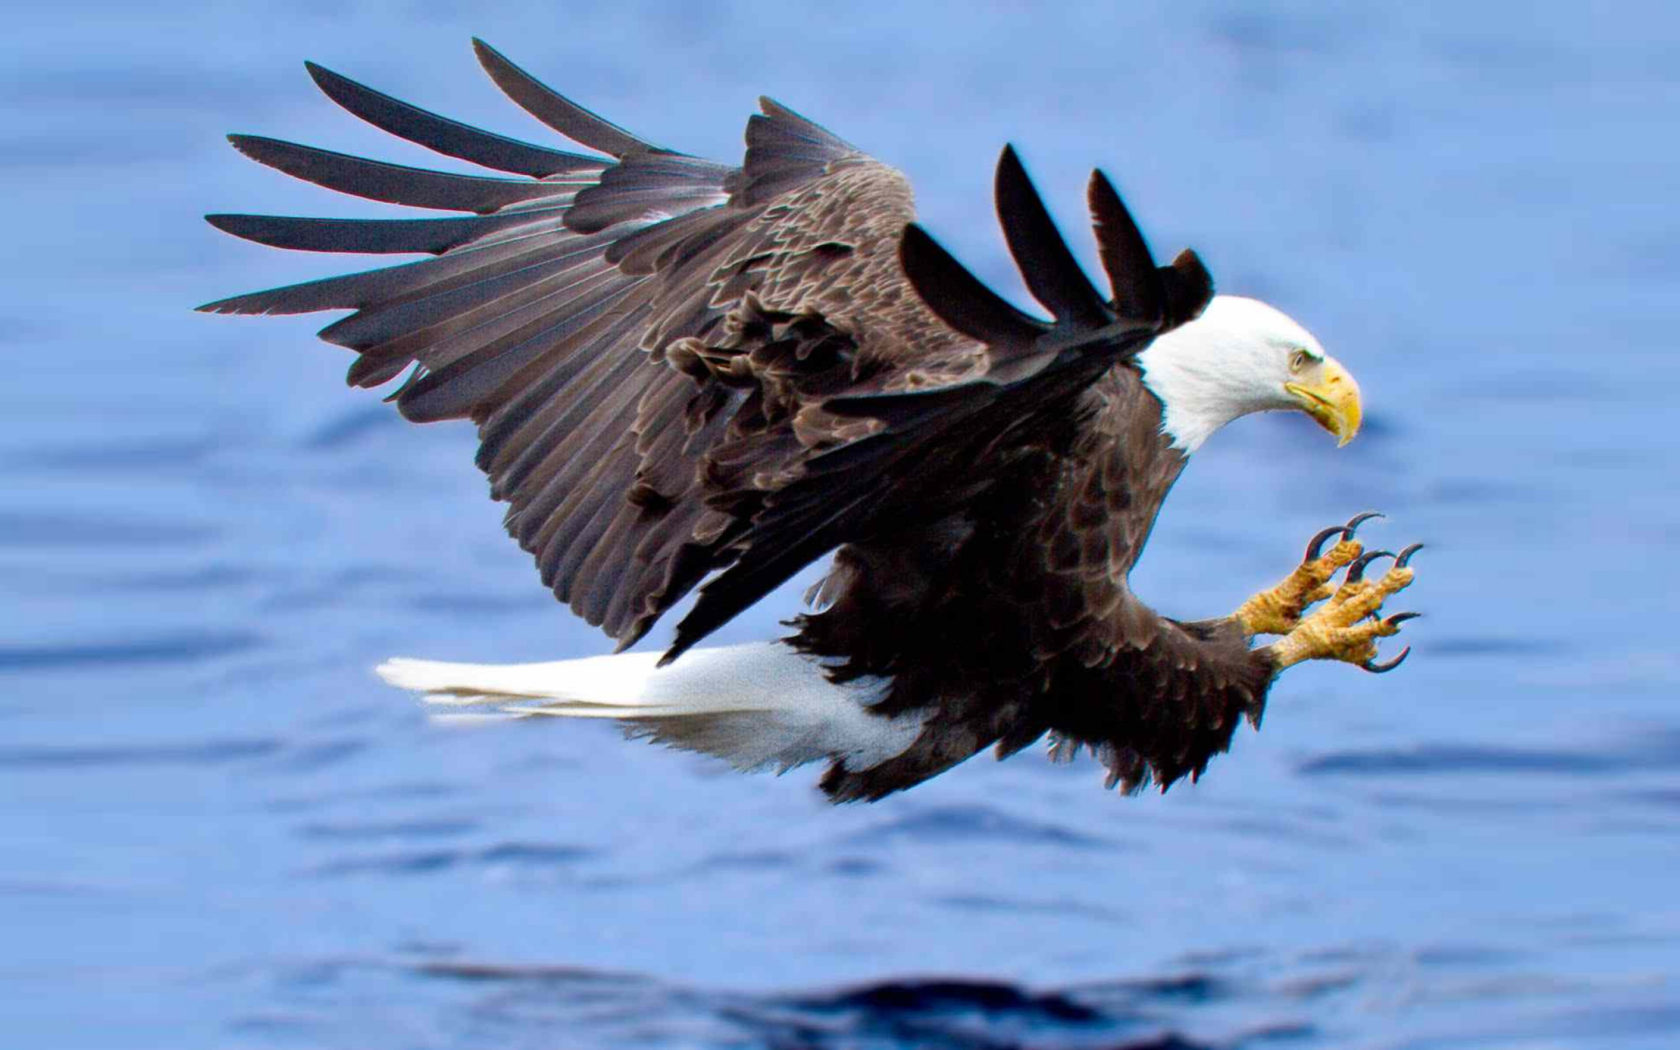 Fall Desktop Wallpaper 1920x1080 Attack Of The Bald Eagle Hunting For Fish In The Lake